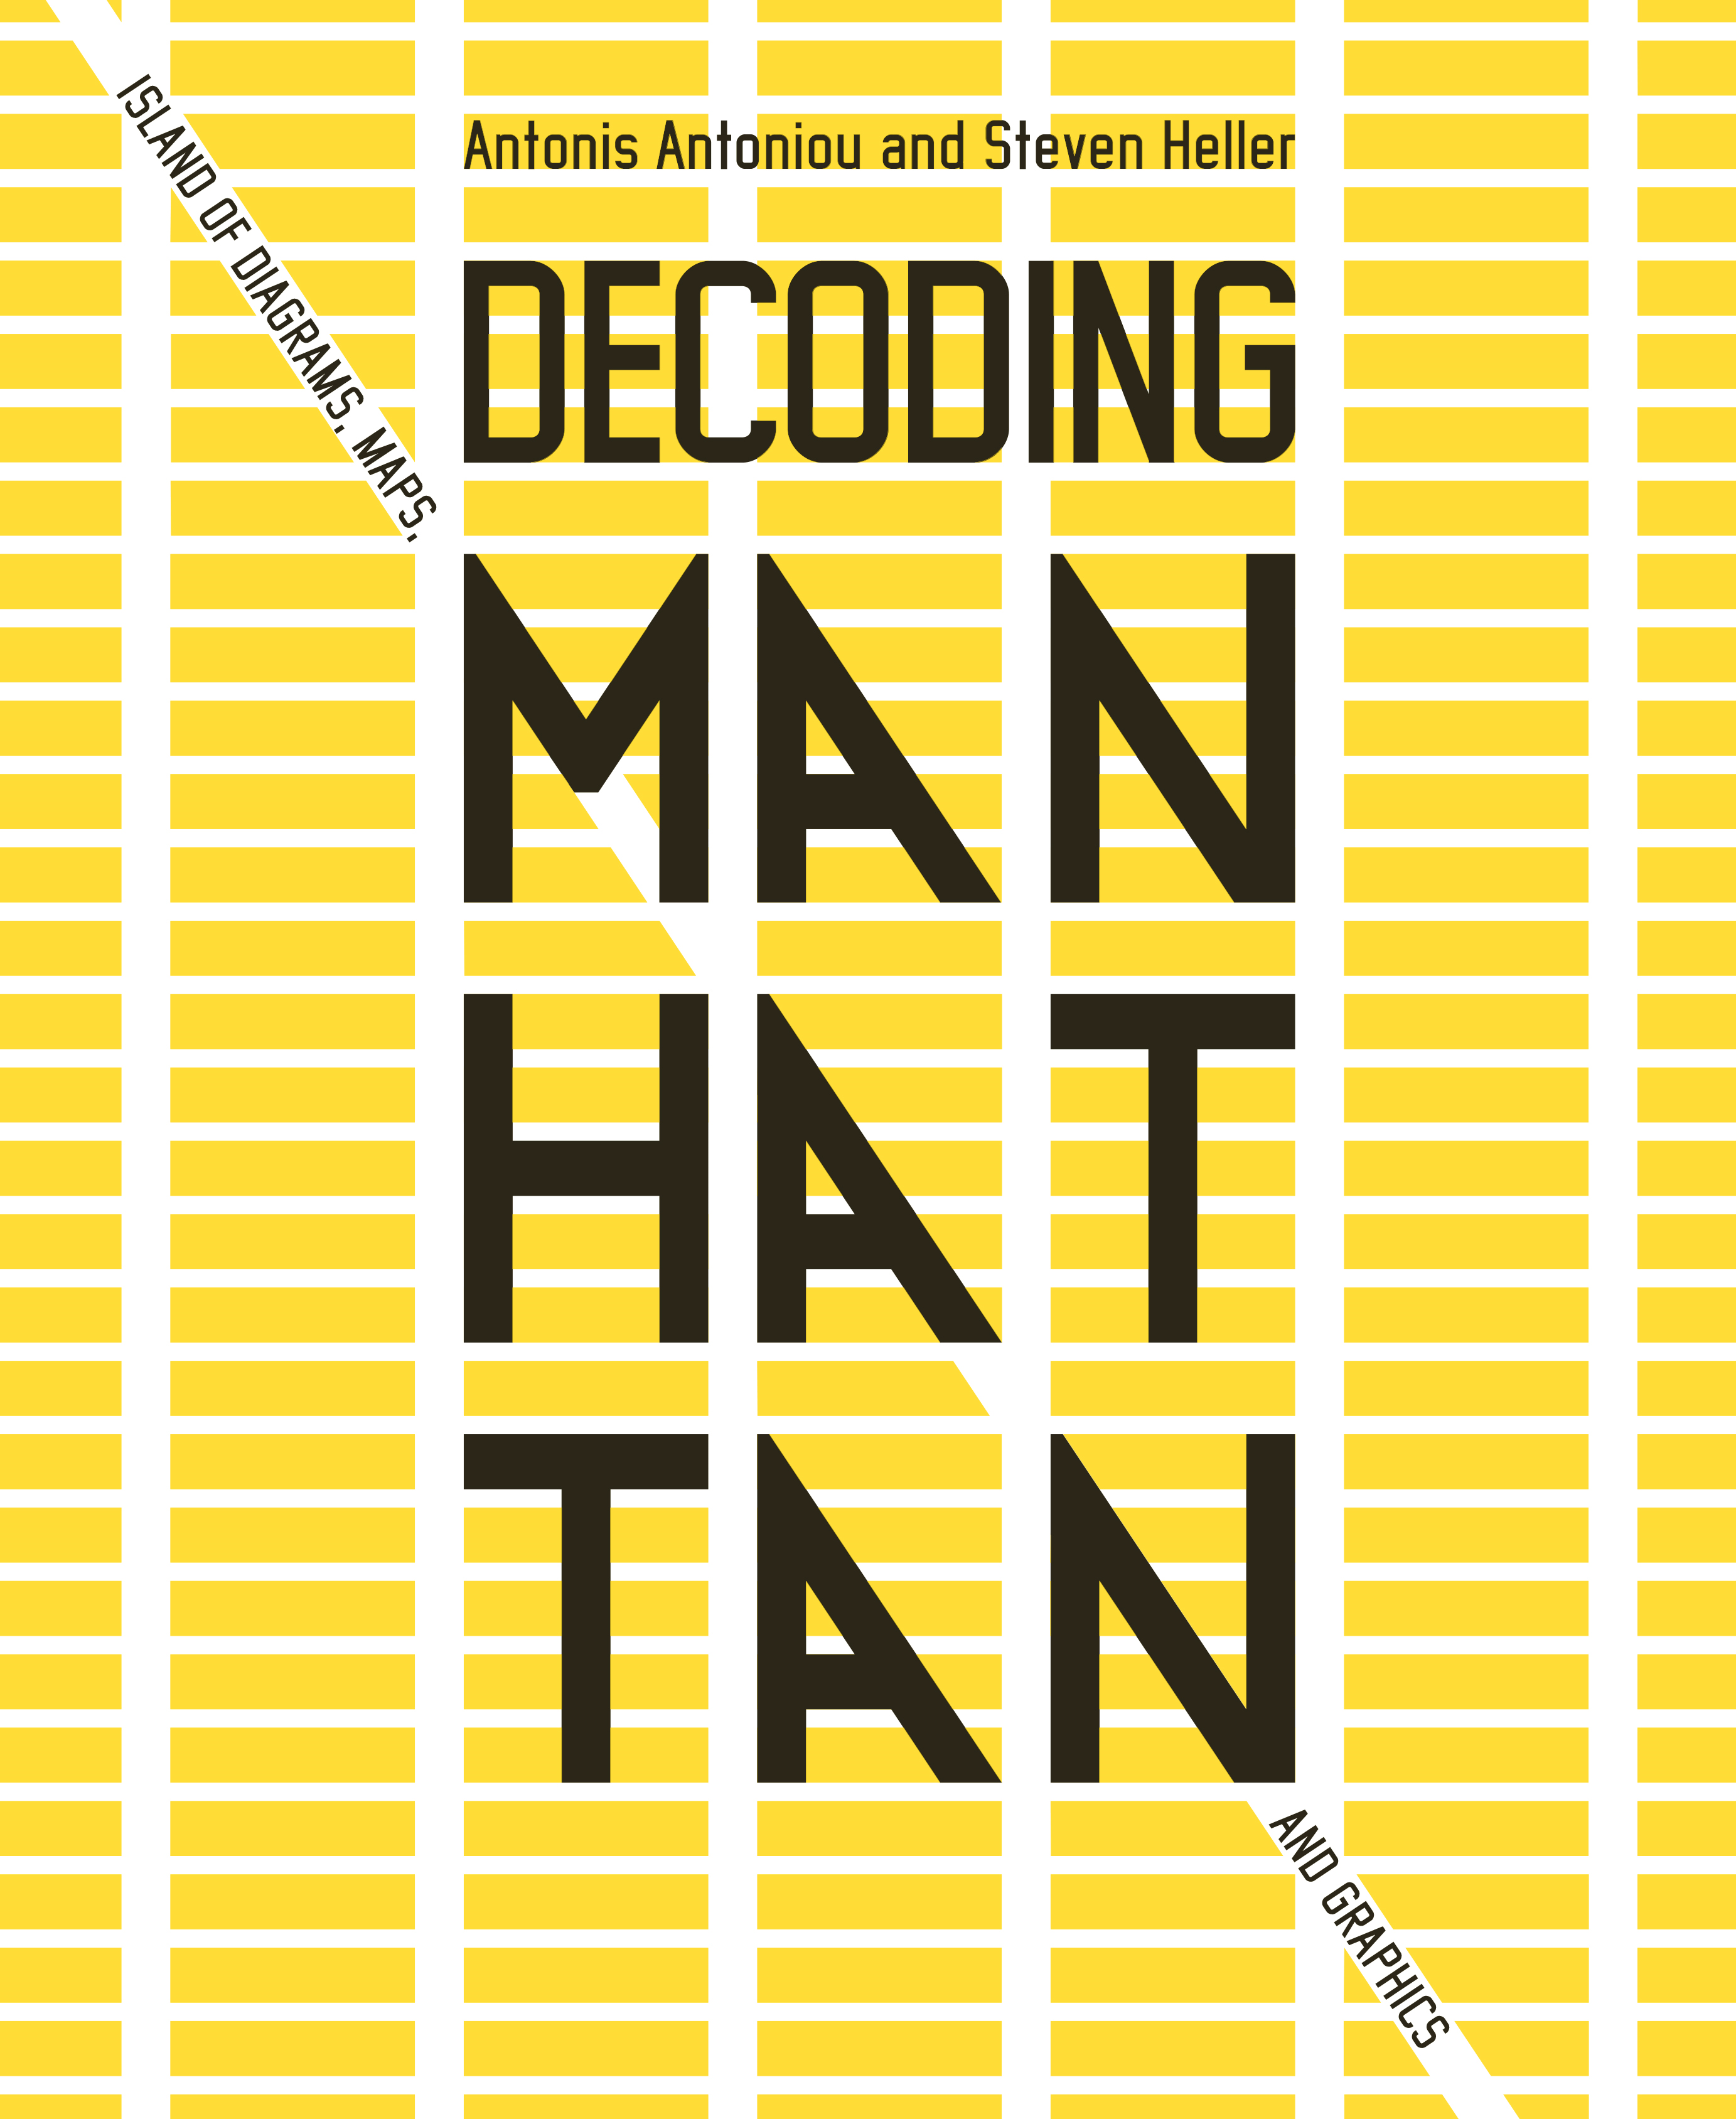 Decoding Manhattan